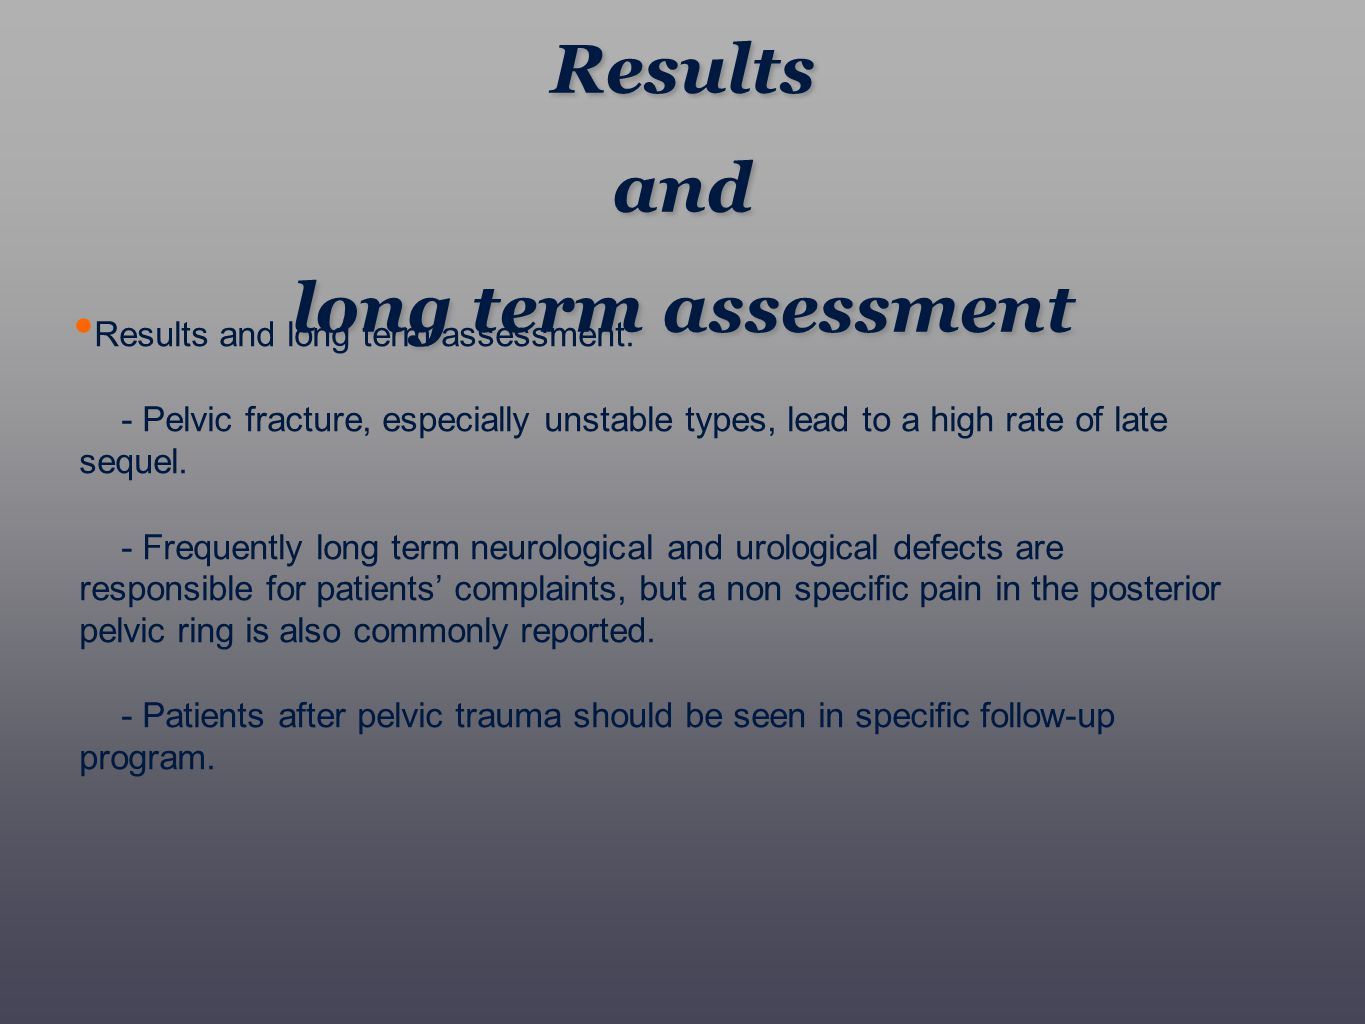 Results and long term assessment Results and long term assessment Results and long term assessment: - Pelvic fracture, especially unstable types, lead